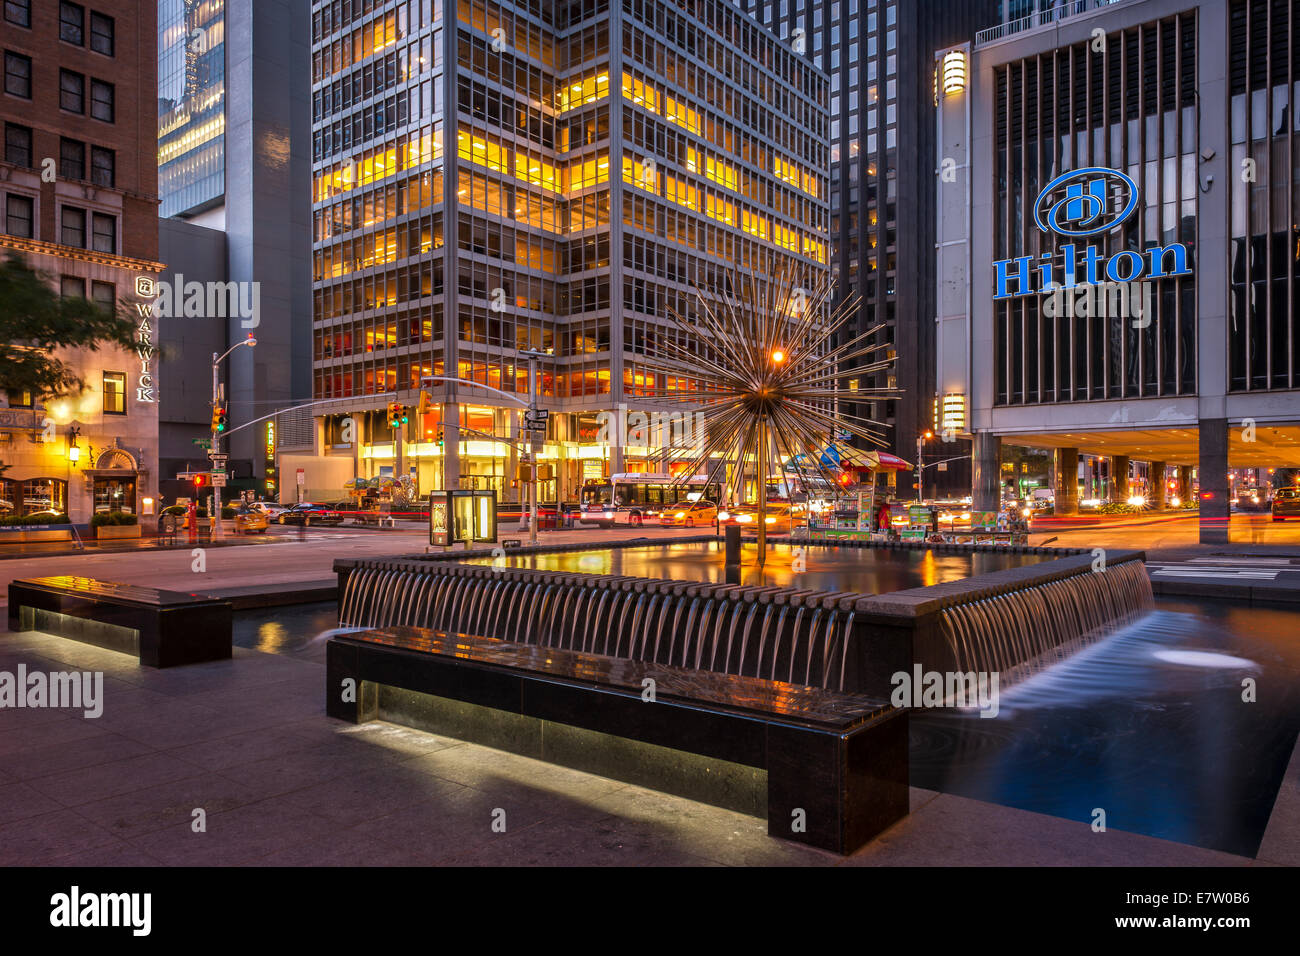 New york hilton midtown stock photos new york hilton midtown one of the water features near the hilton hotel in midtown manhattan new york sciox Image collections